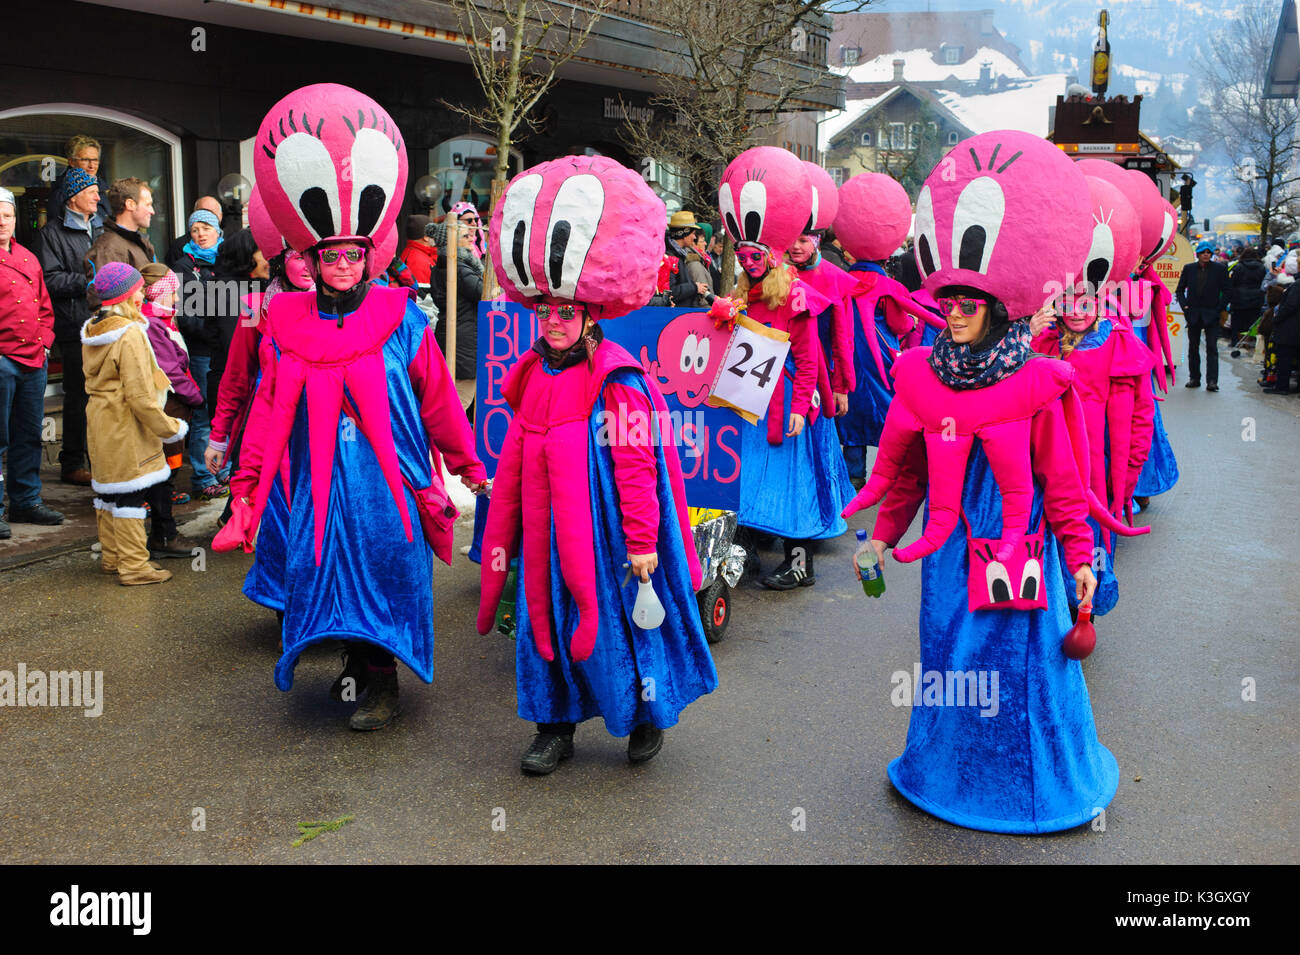 carnival procession on the high street of Bad Hindelang on carnival Sunday with many artistic masks, as for example cuttlefish - Stock Image